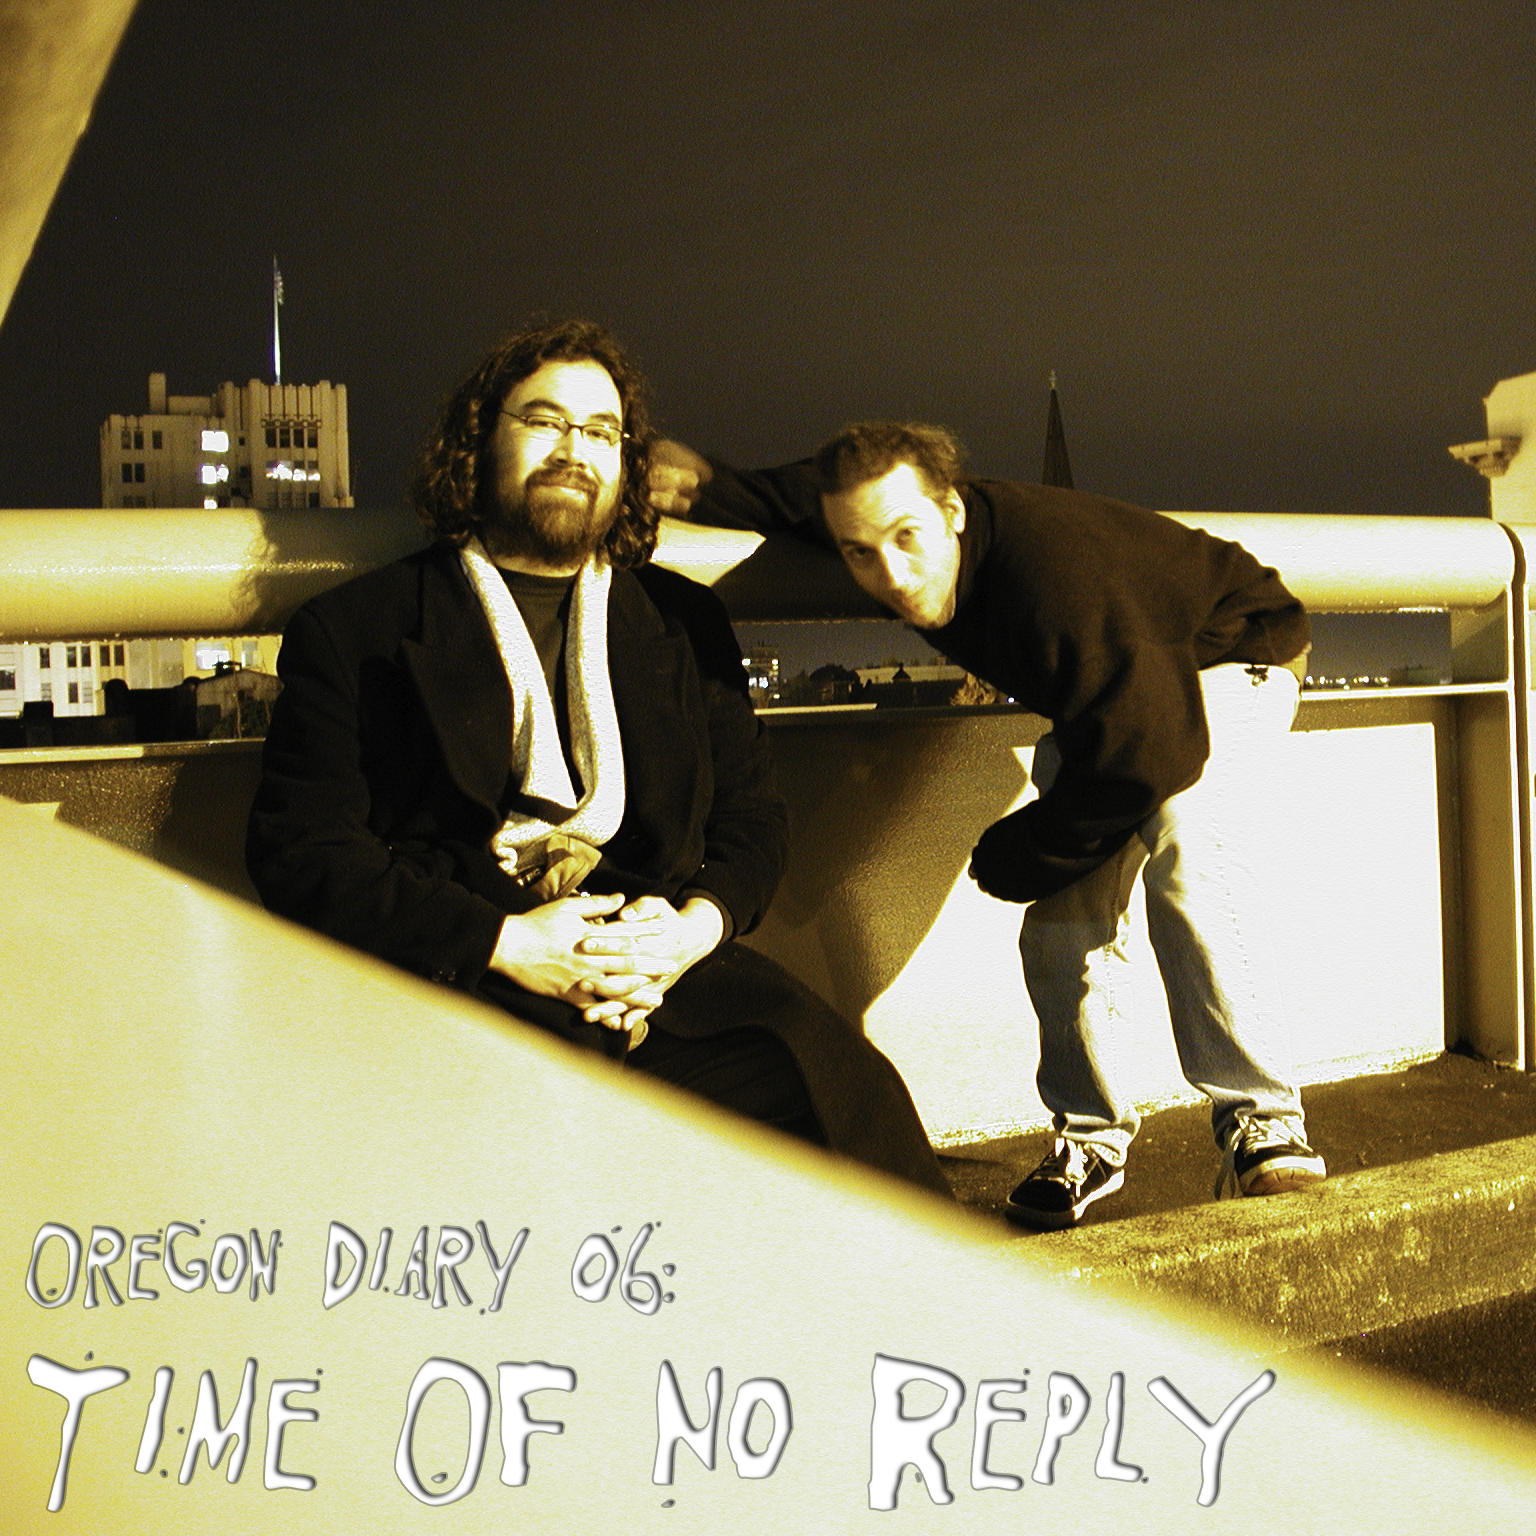 Oregon Diary Volume 06: Time of No Reply